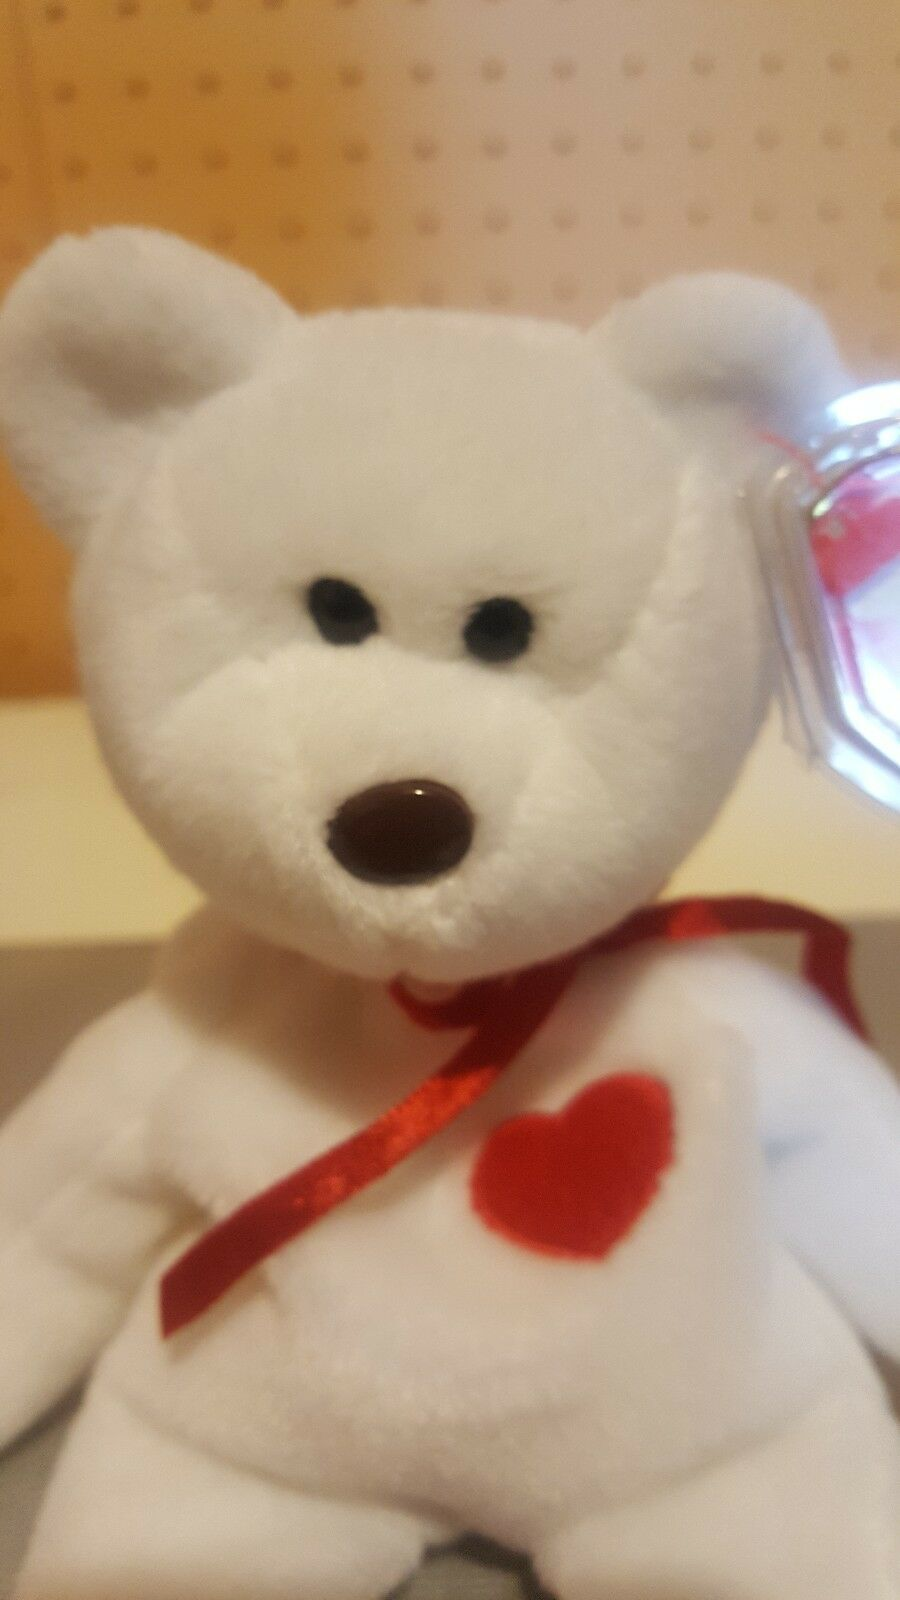 Extremely Rare   VALENTINO 1993 1994 TY TY TY Beanie Baby with tag errors MINT PVC 77171d